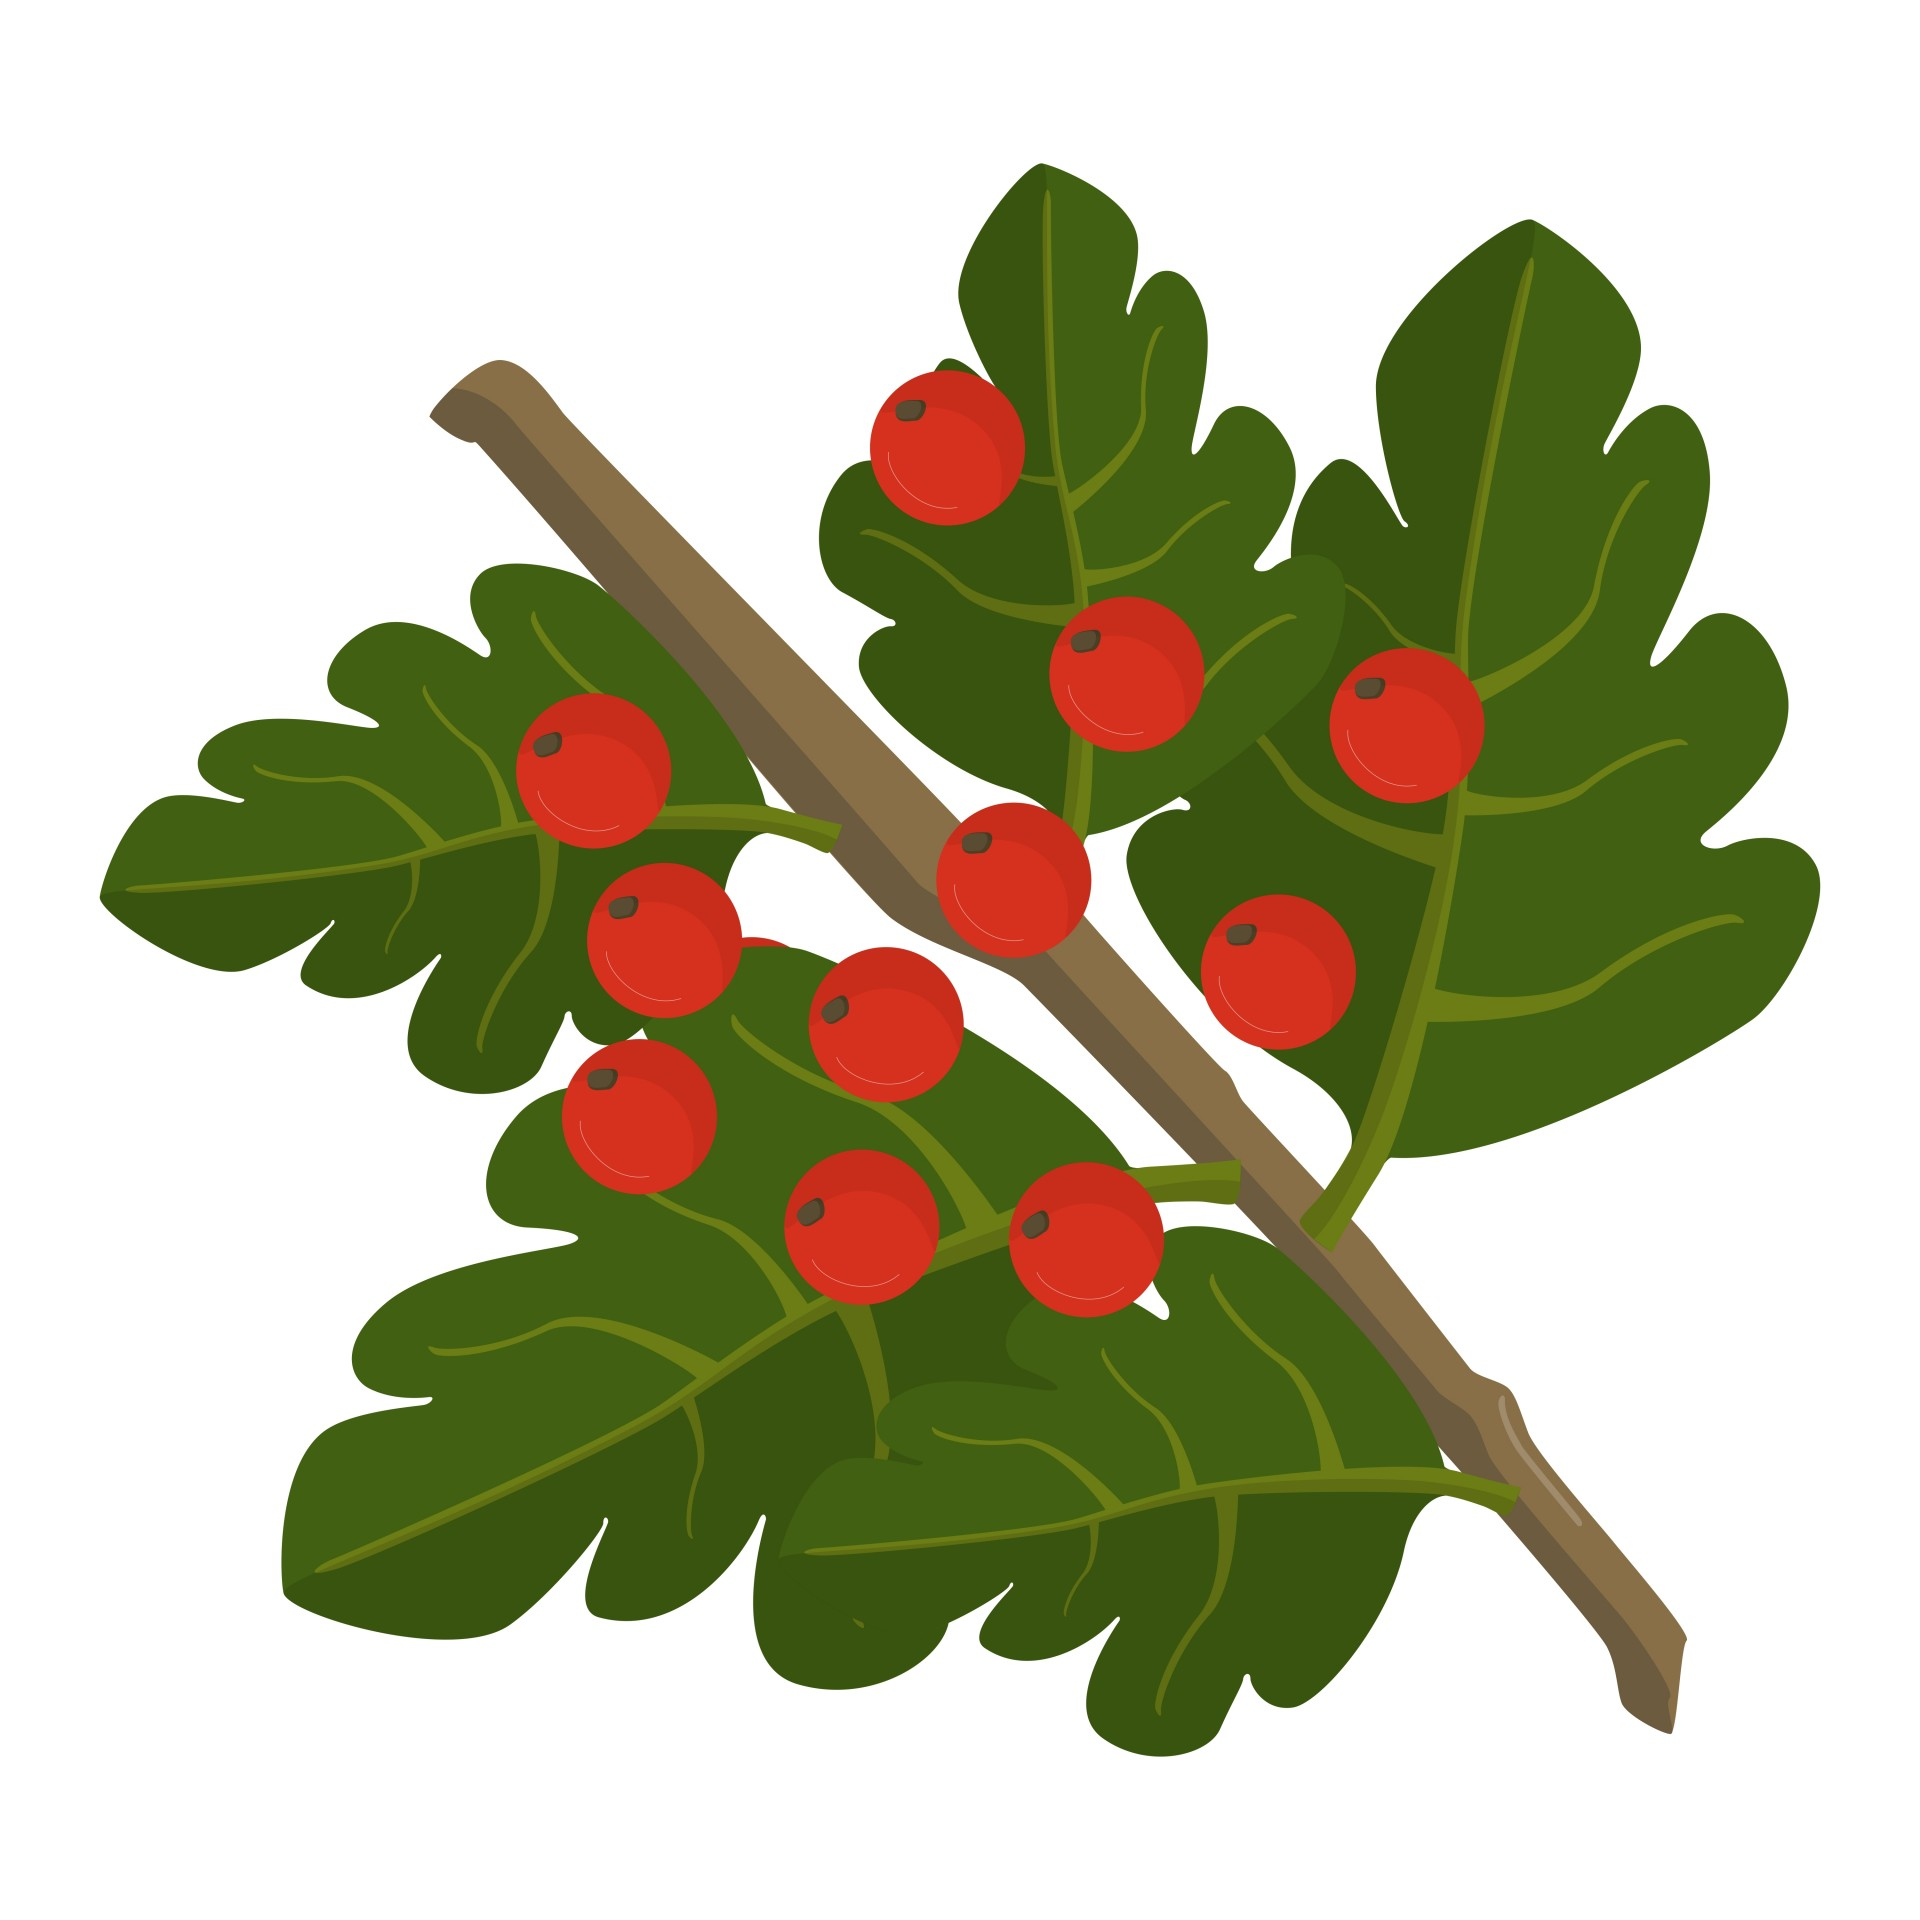 Berries clipart autumn berry. Hawthorn free stock photo